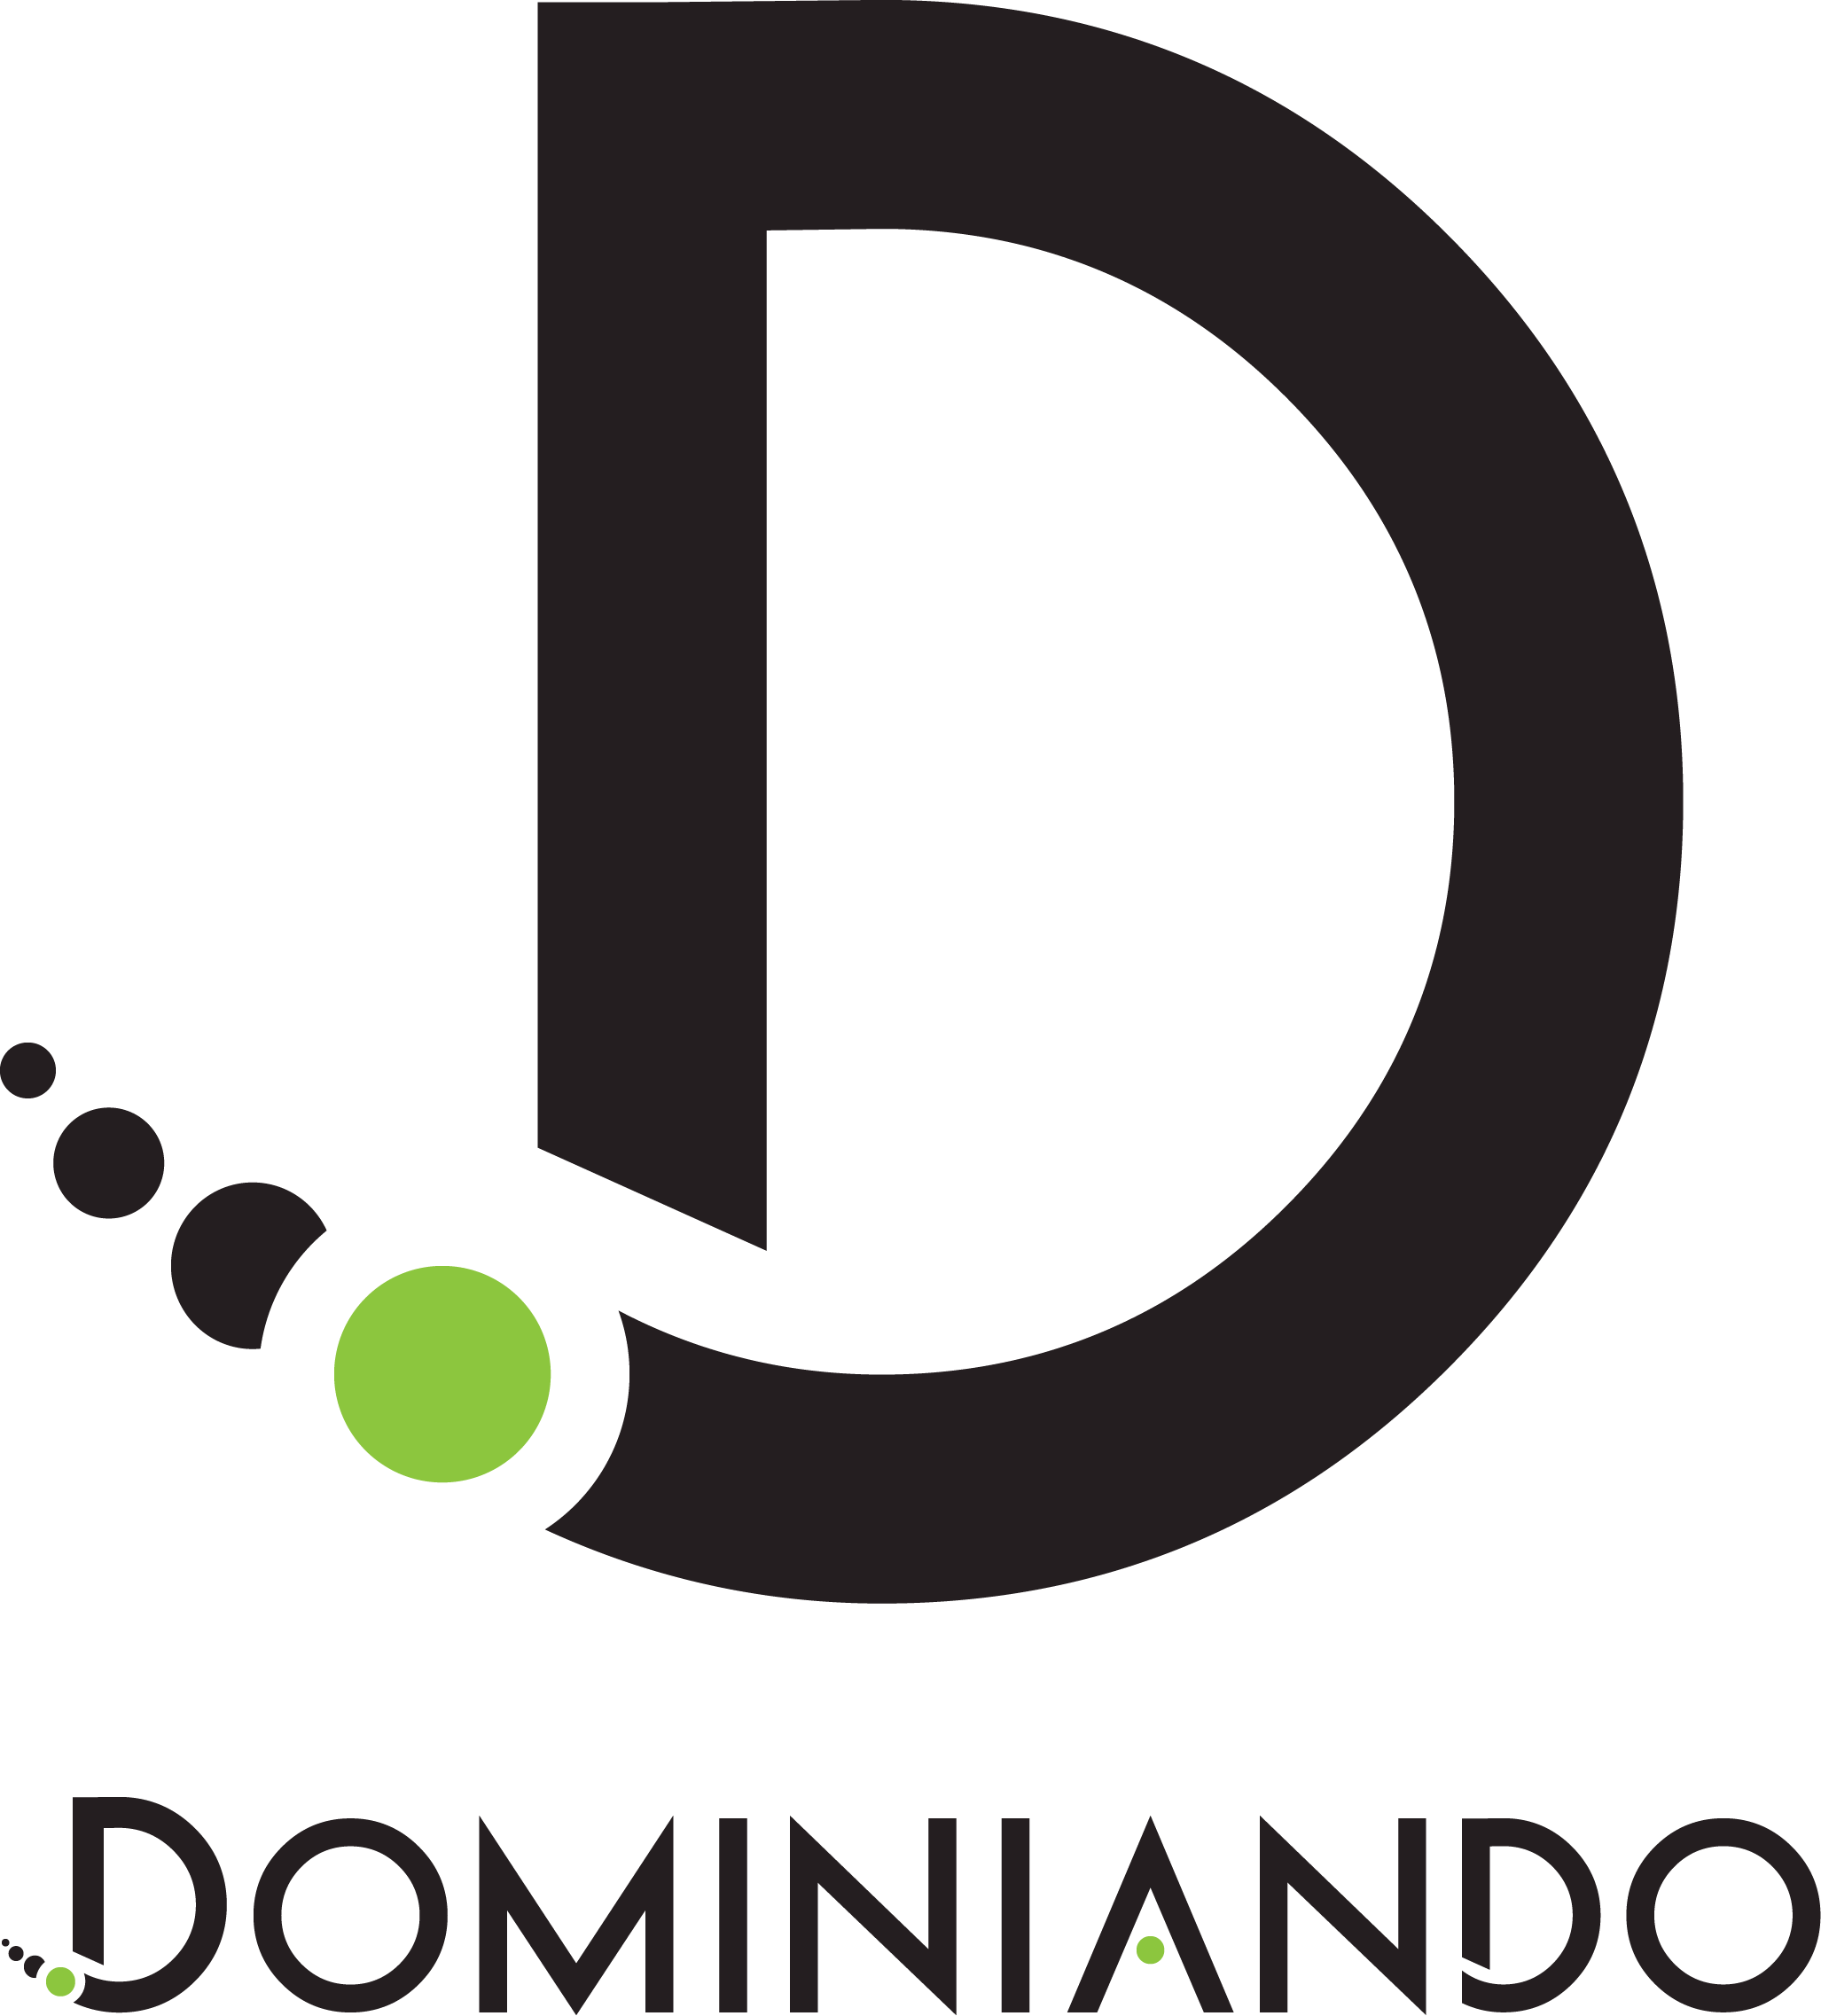 Dominiando.it double les services de hosting